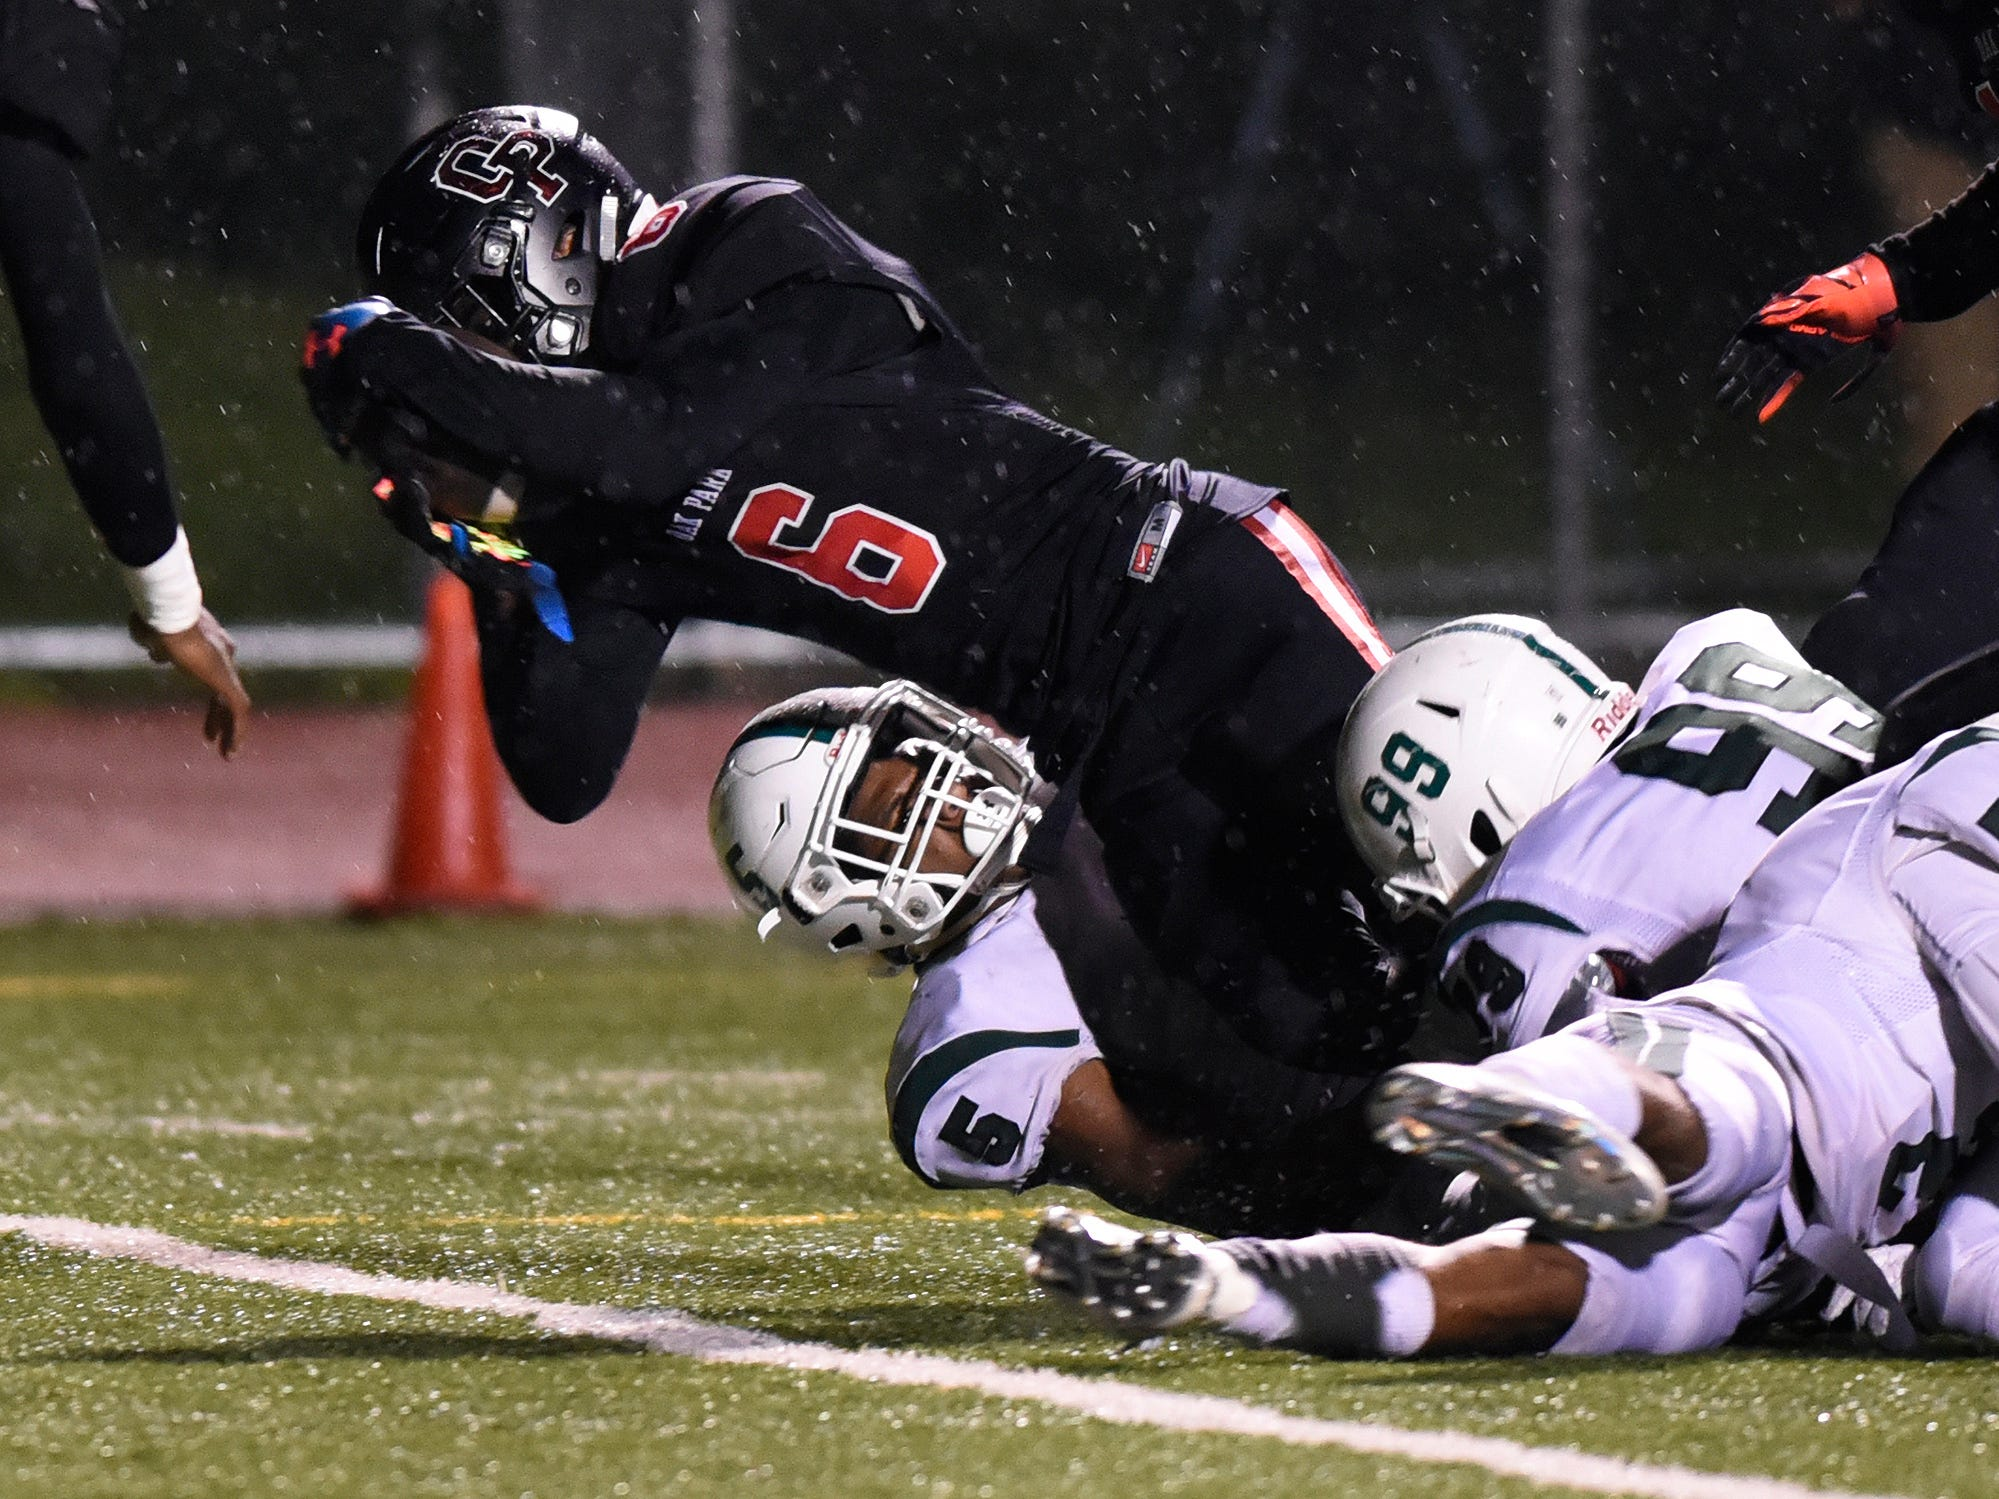 Oak Park running back Torriano Richardson (6) dives across the goal line for a touchdown against West Bloomfield during the third quarter.